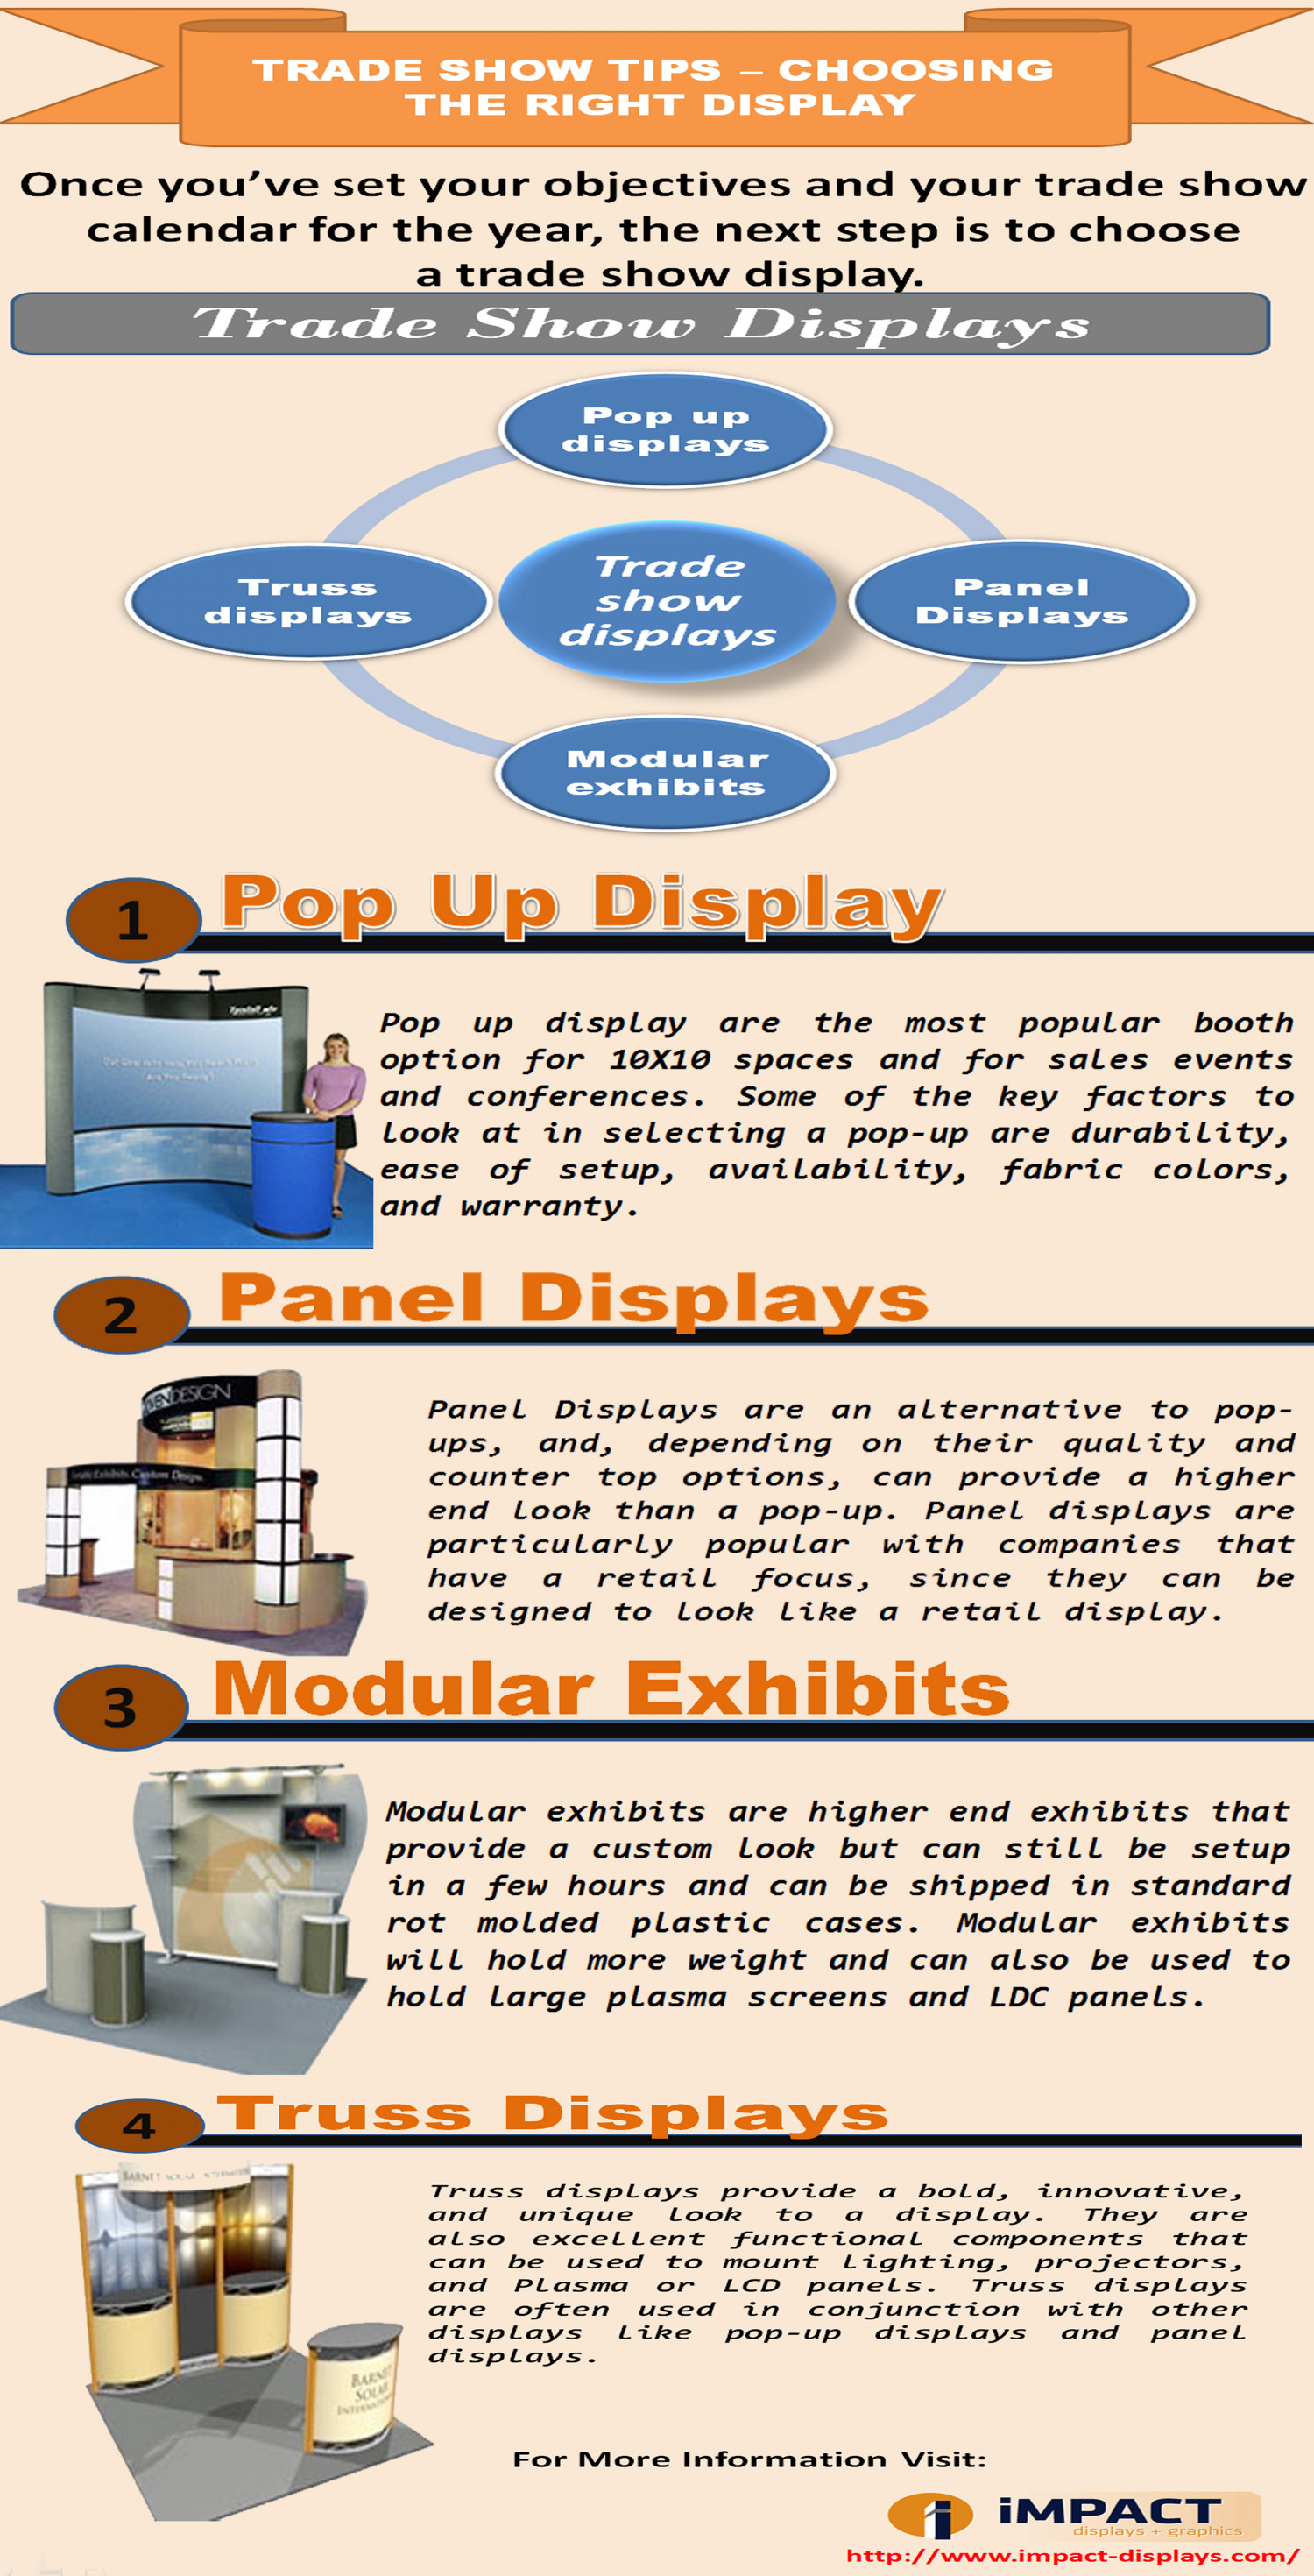 TRADE SHOW TIPS - CHOOSING THE RIGHT DISPLAY Infographic